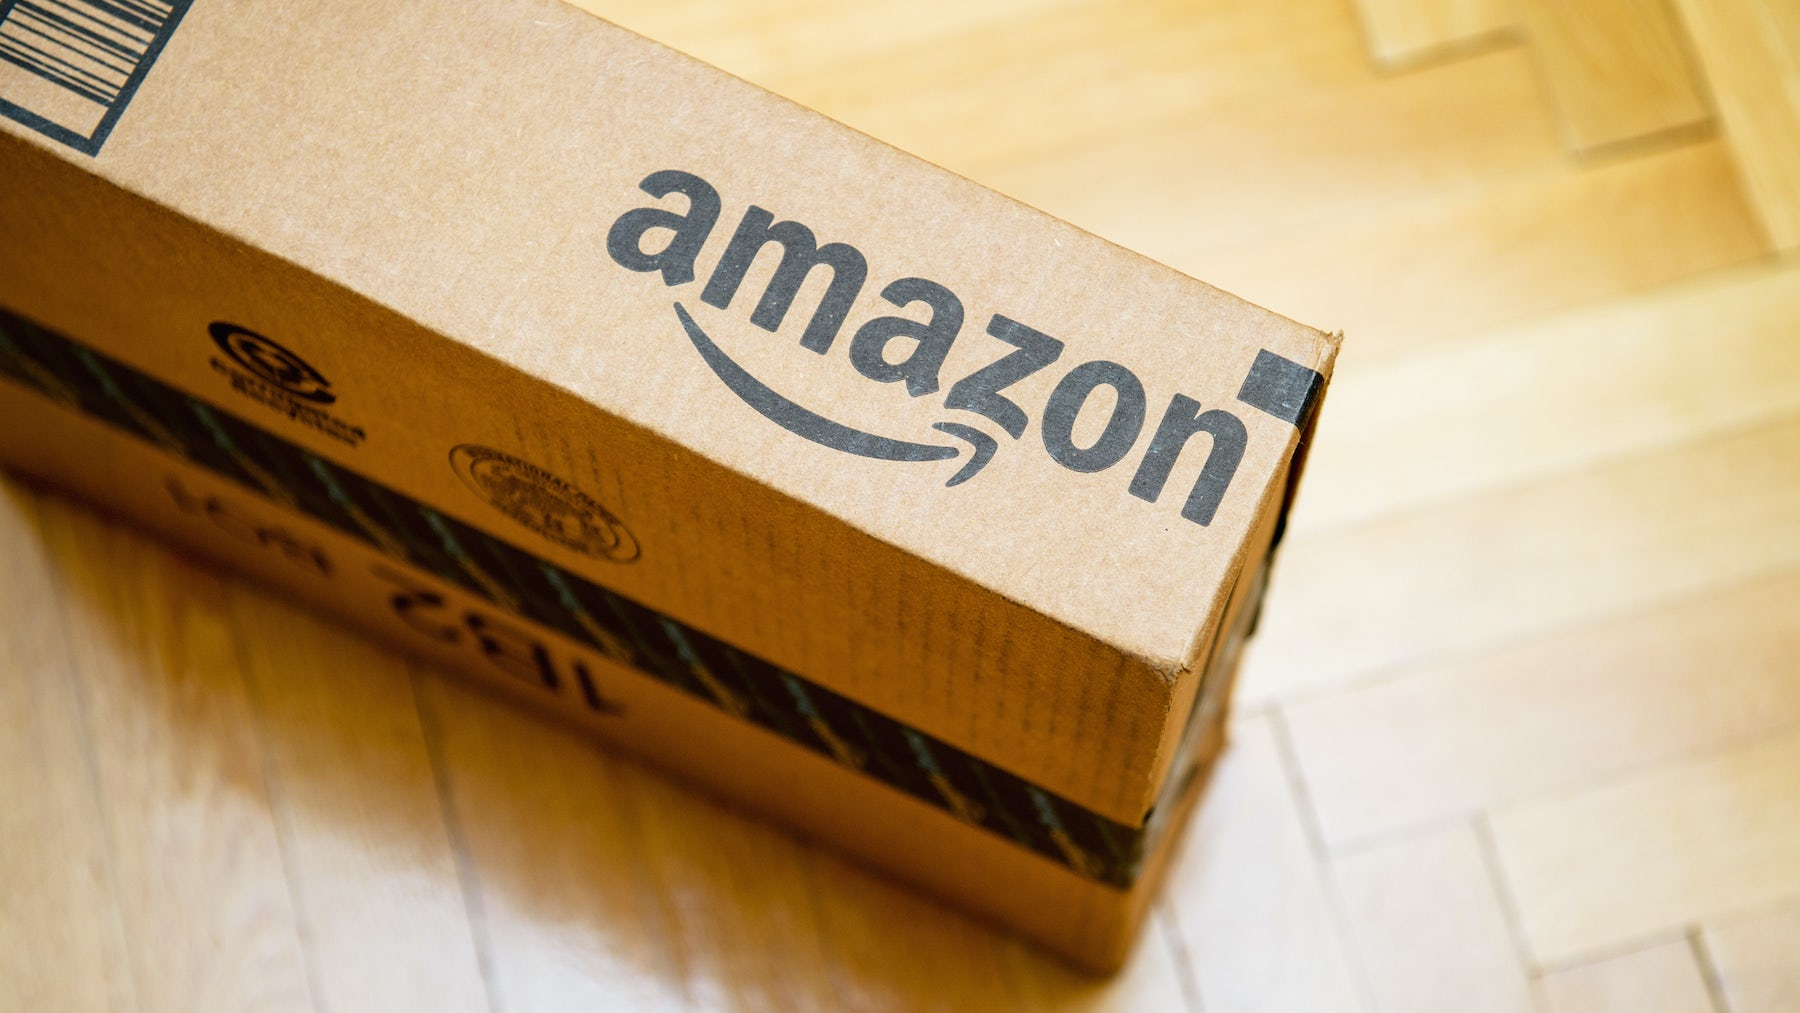 Amazon to Pay €100 Million to Settle Italy Tax Dispute